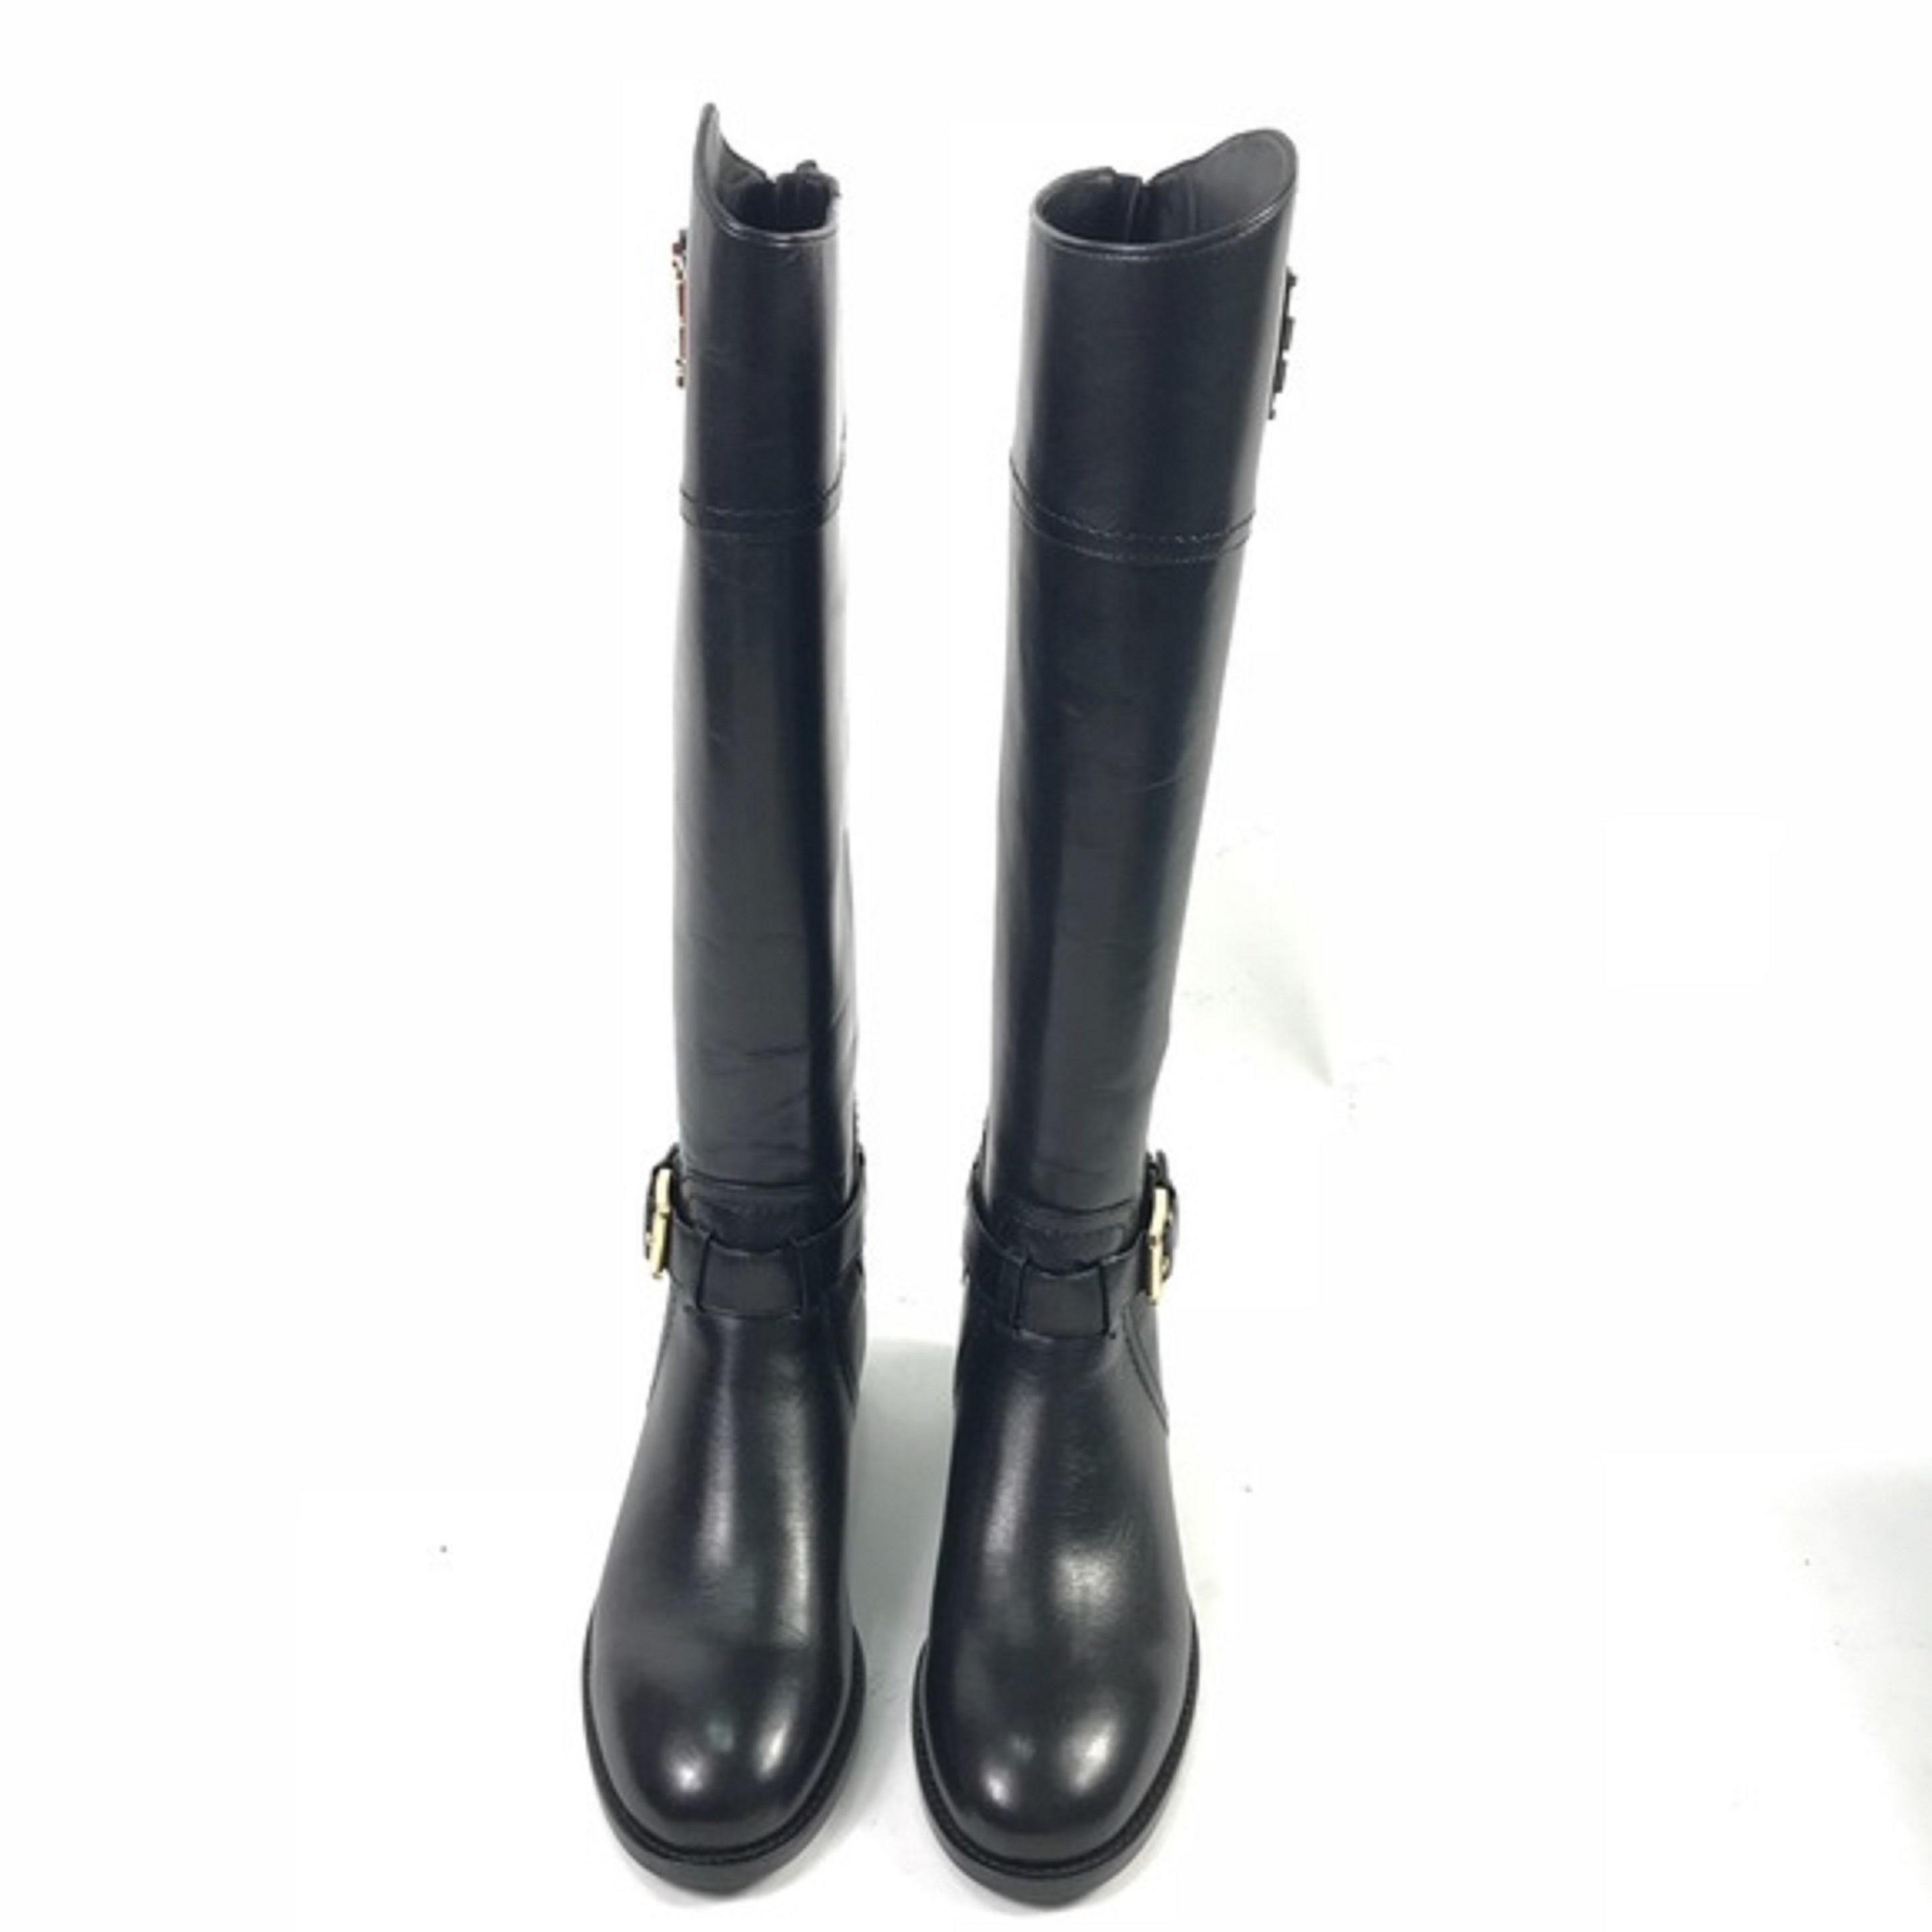 5caa3a24e839 ... spain burch boots booties black booties tory tory black booties tory  burch black boots burch boots